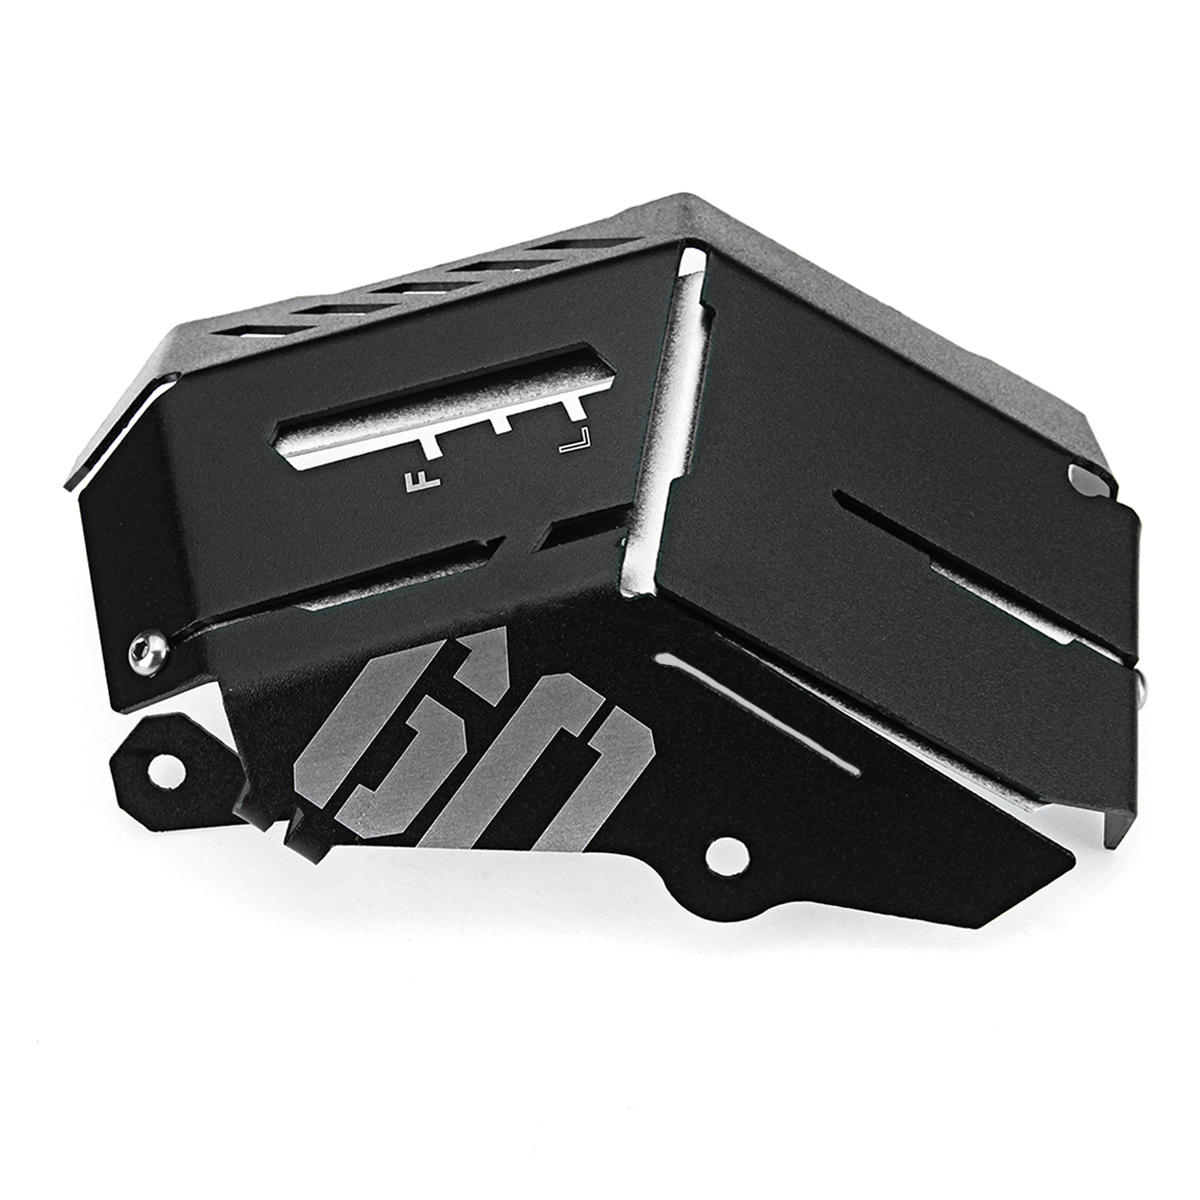 Motorcycle Radiator Side Grill Guard Water Coolant Tank Cover For Yamaha  MT09 FZ09 14-17